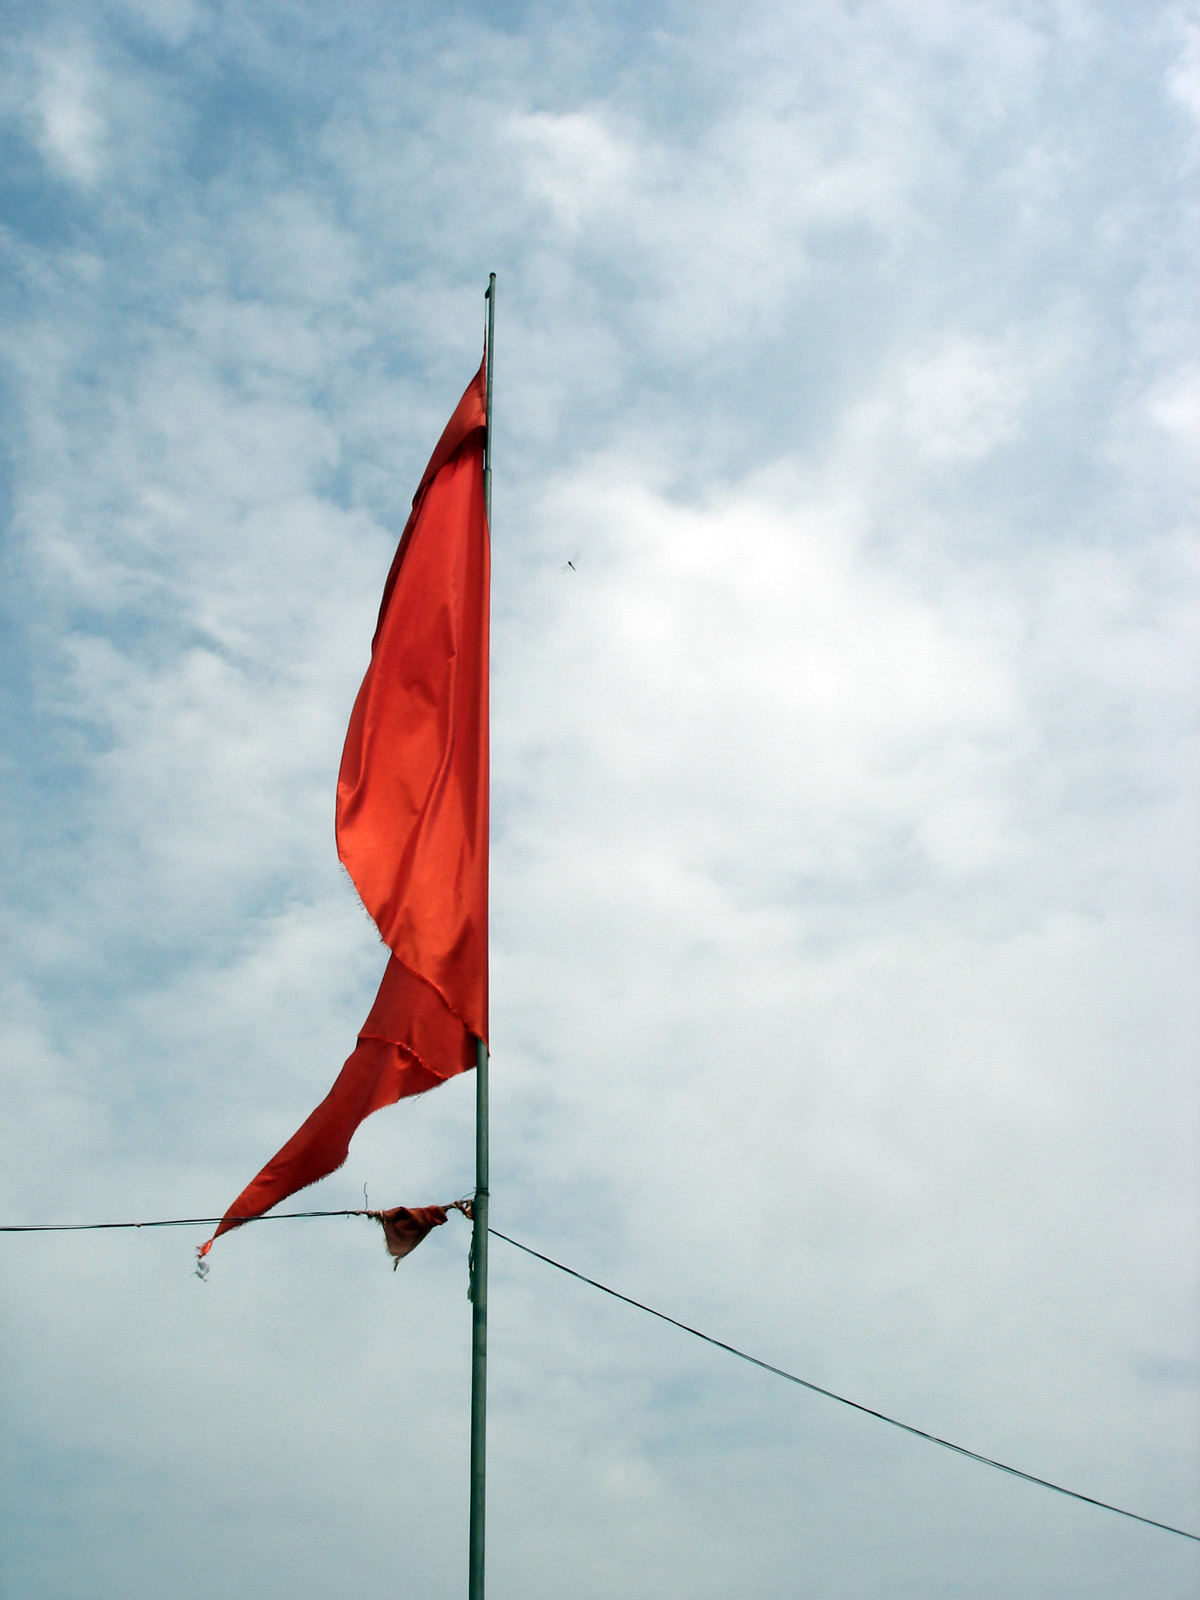 Red flag on the sky, Bspo06, Color, Flag, Holy, HQ Photo